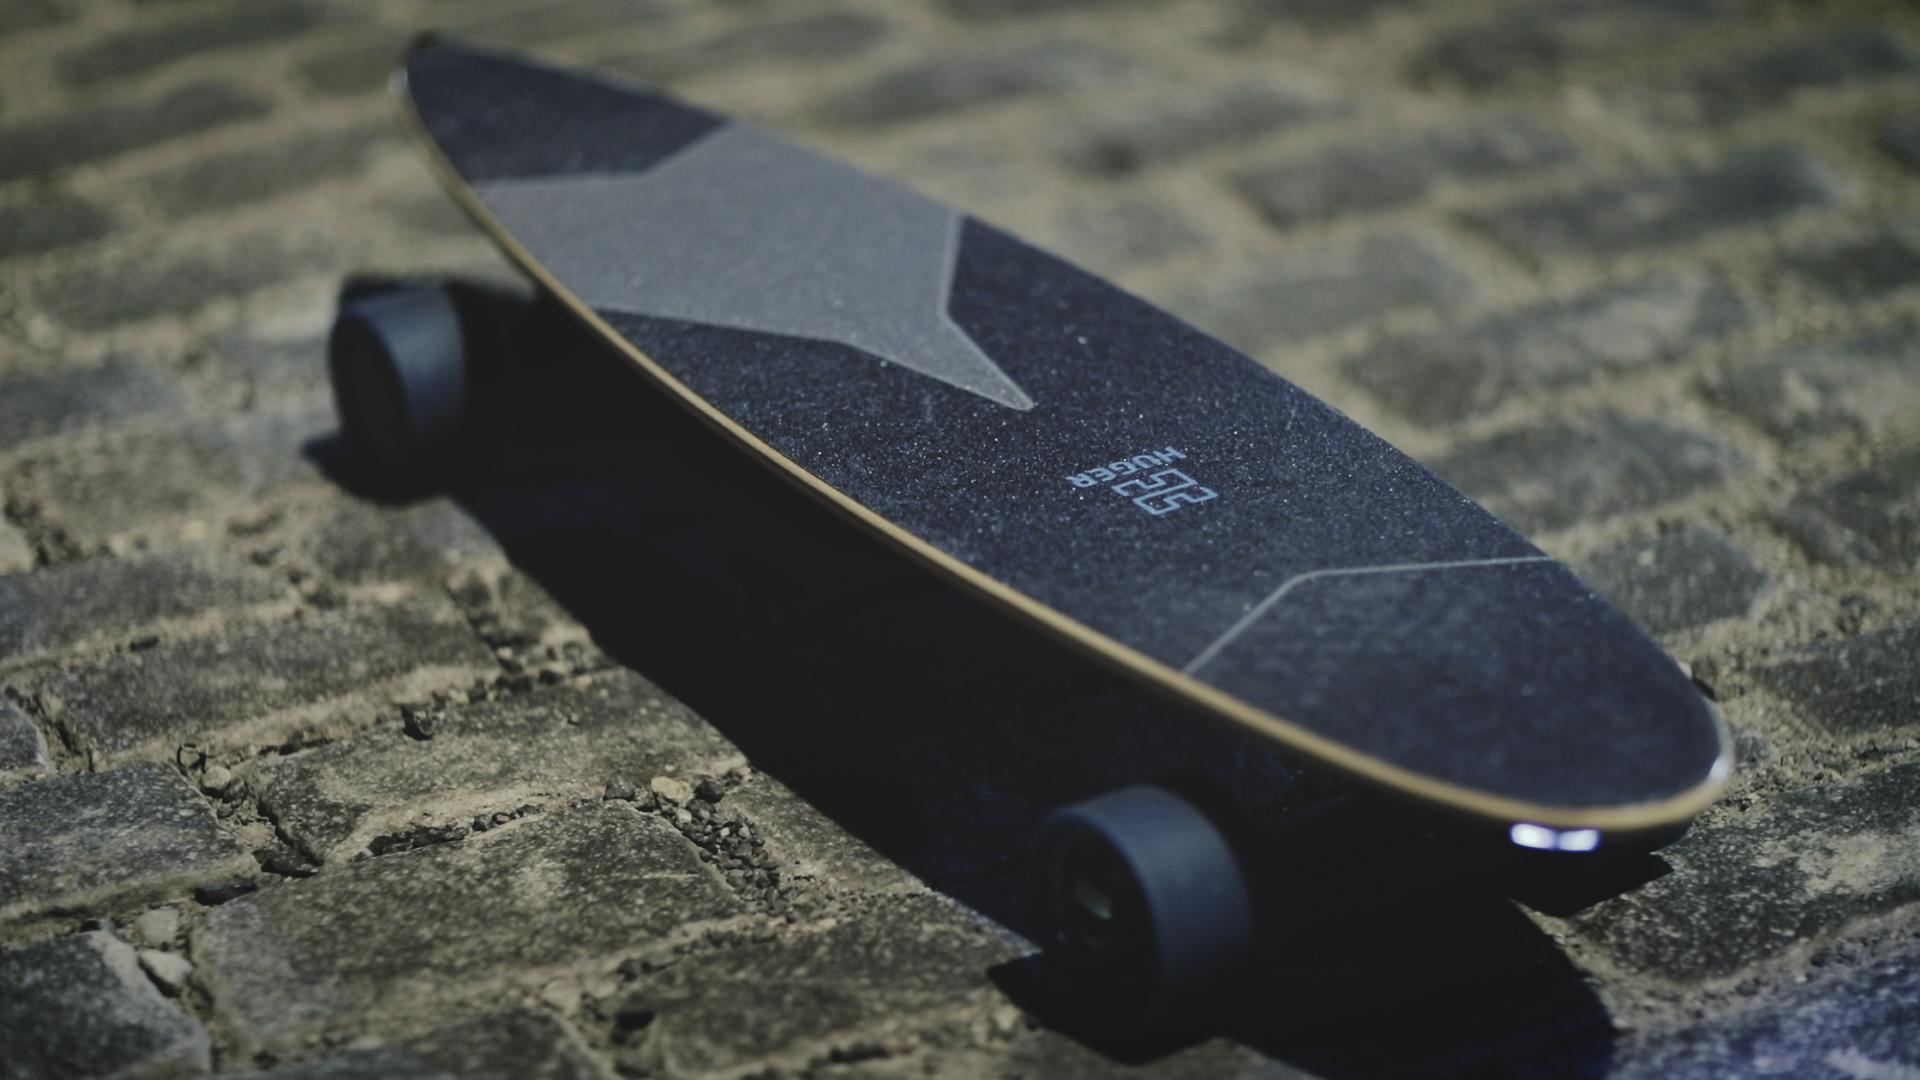 Huger Tech's electric skateboard impresses